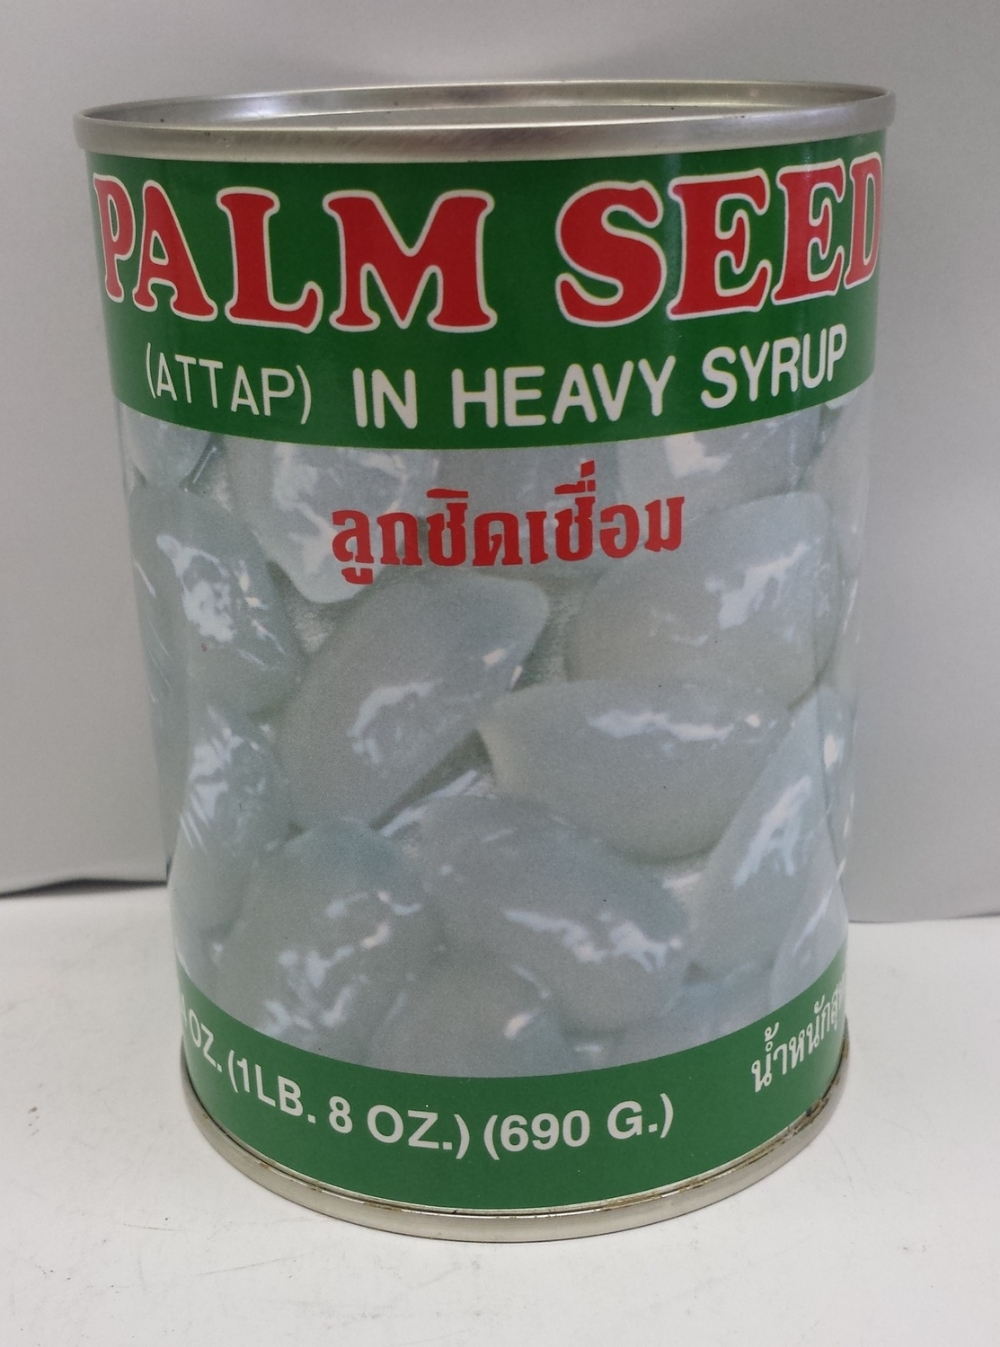 Palm Seed (Attap) in  Heavy Syrup   Singing Bird   FC16100 24x24 oz